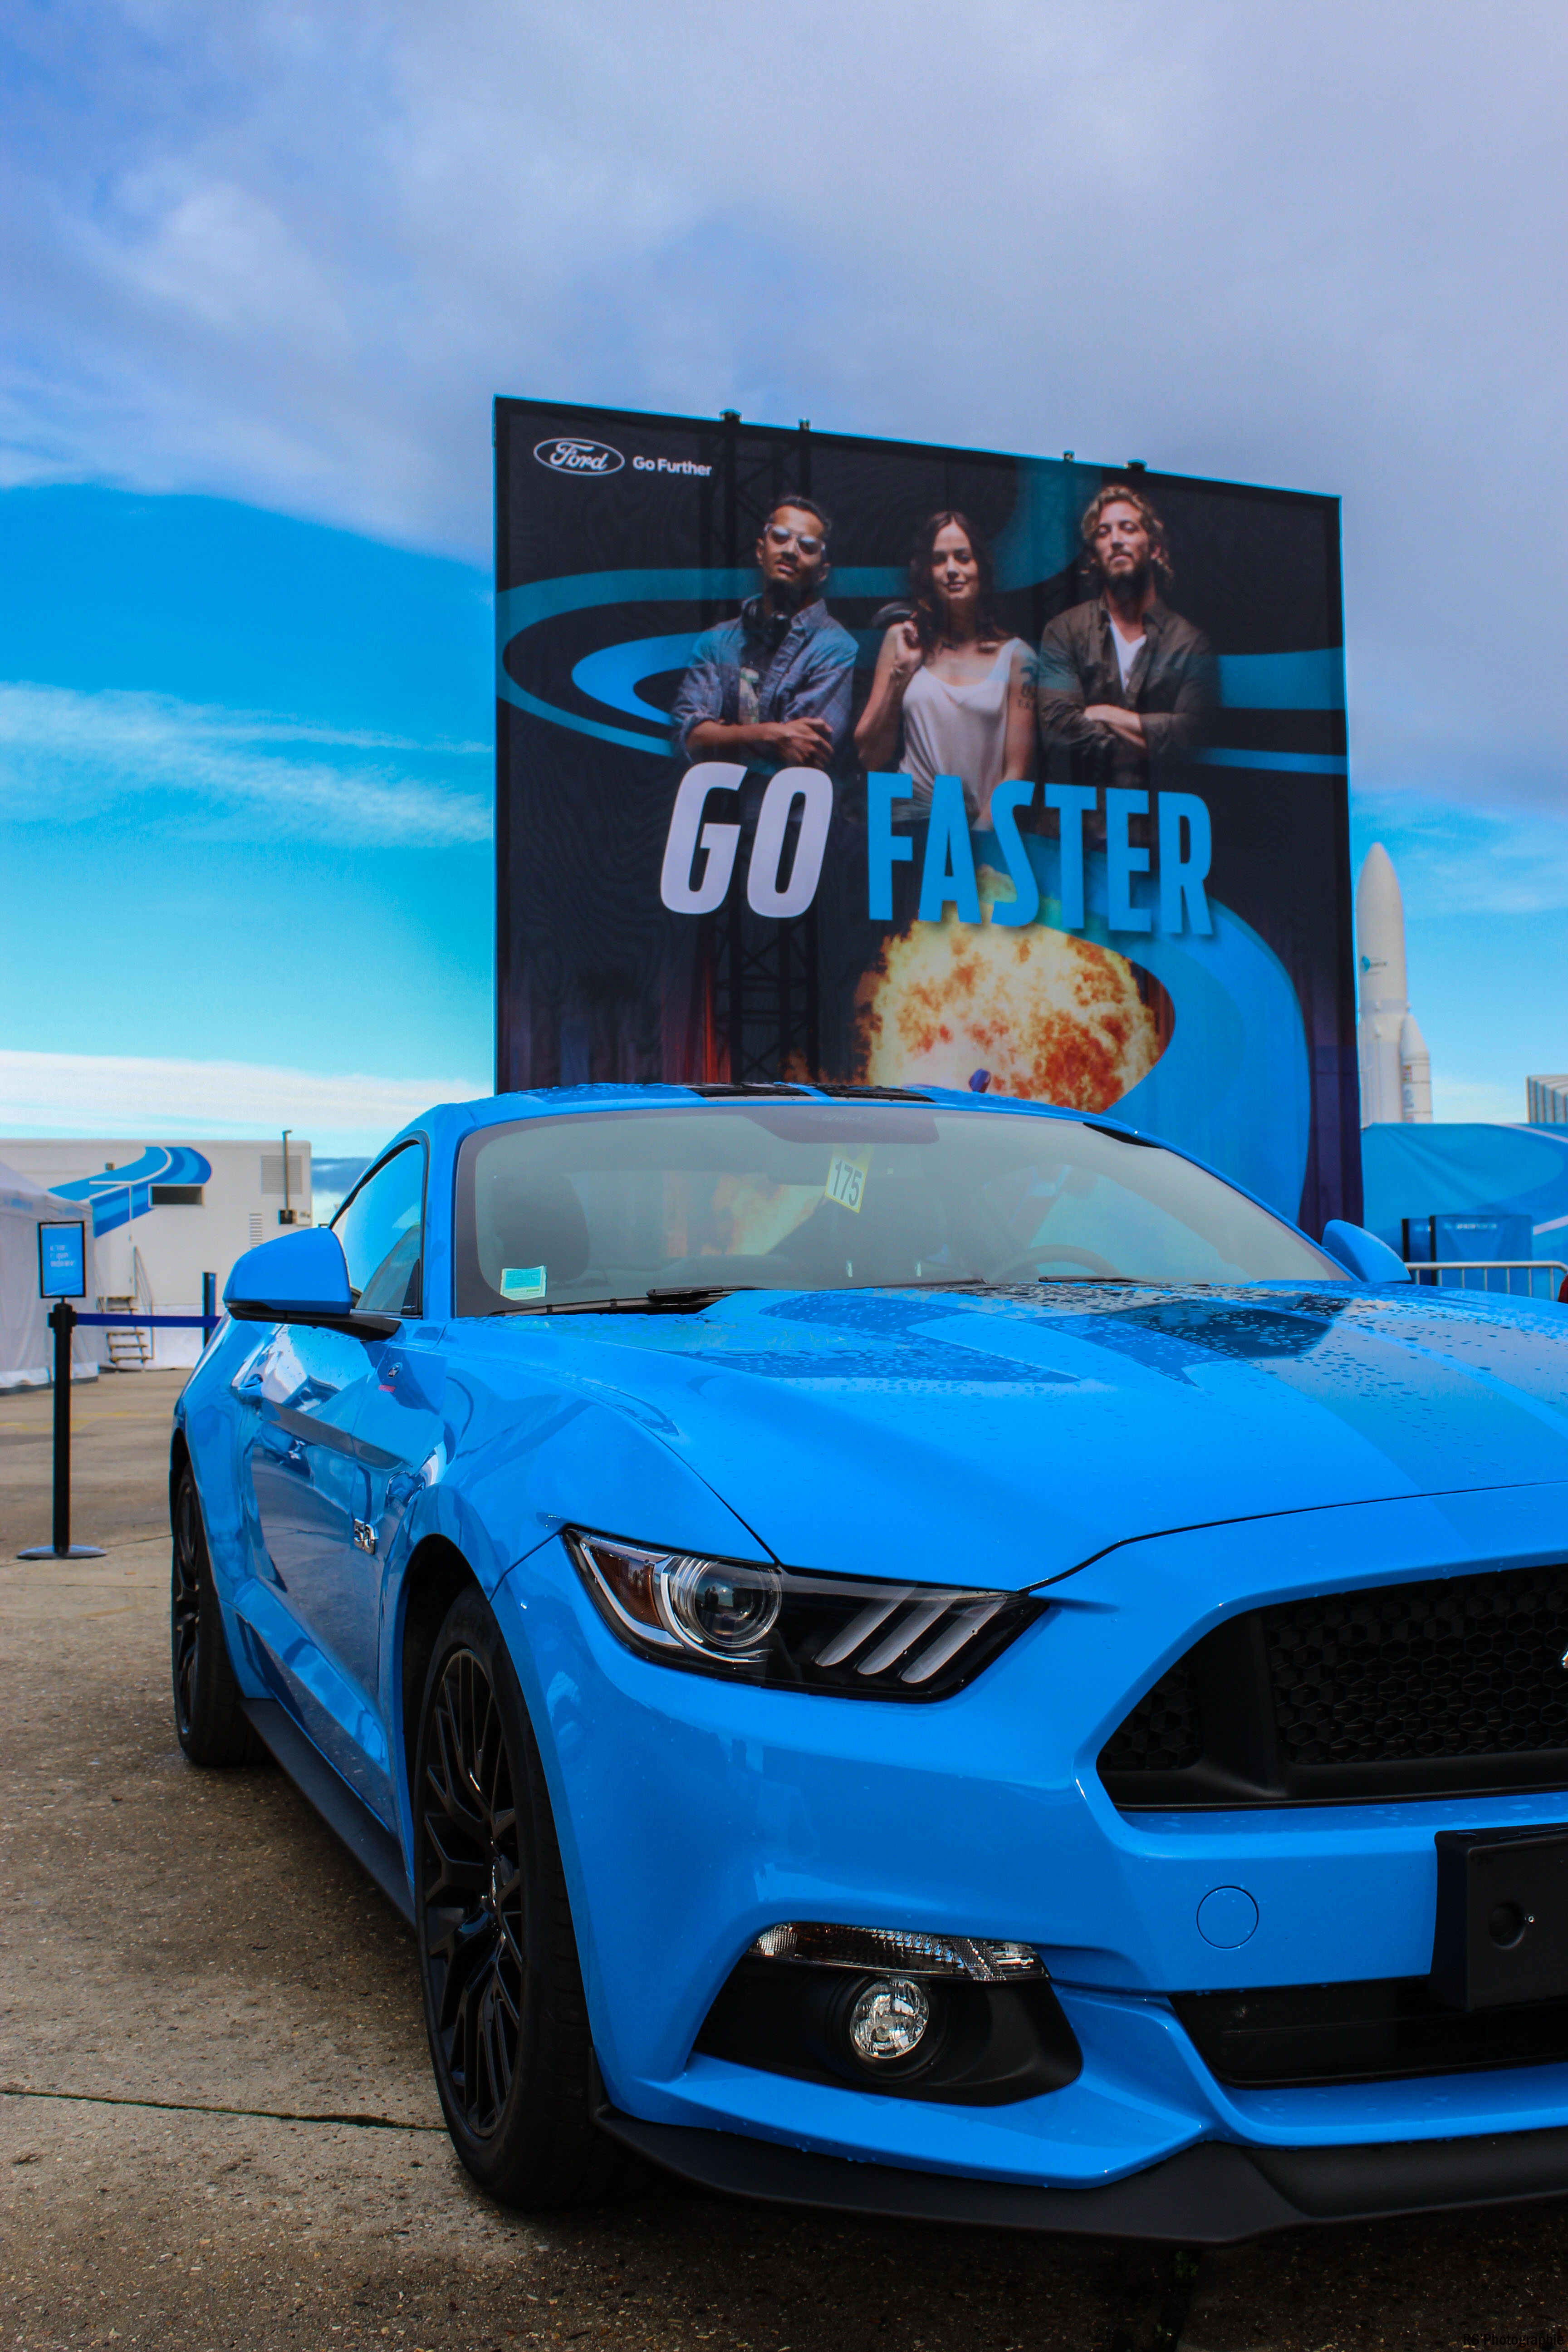 gofaster1-opération-go-faster-ford-mustang-avant-front-Arnaud Demasier-RSPhotographie